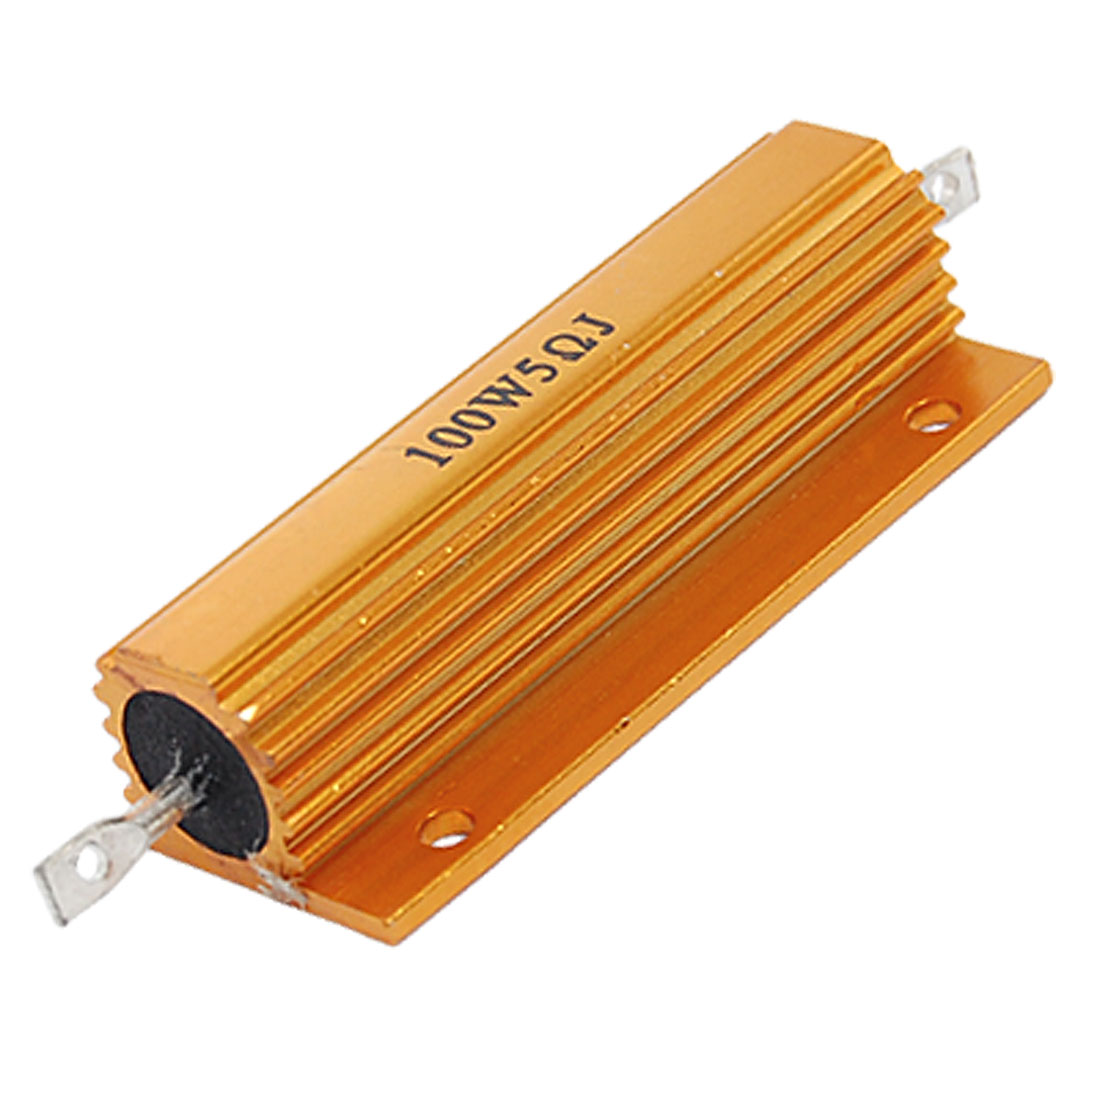 Gold Tone 100W 5 Ohm 5% Aluminum Housed Wire Wound Resistor